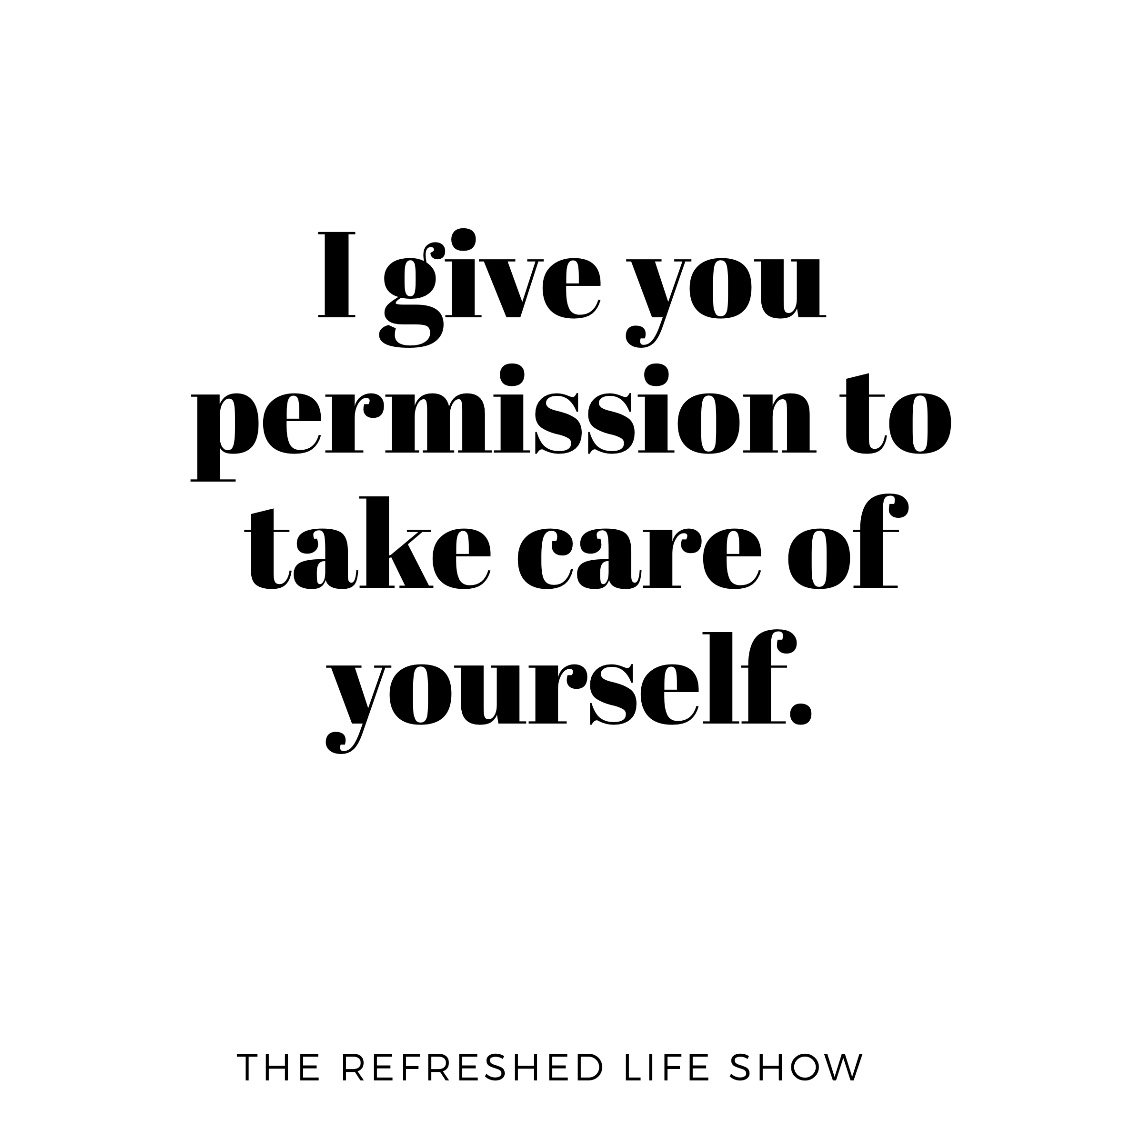 I give you permission to take care of yourself.